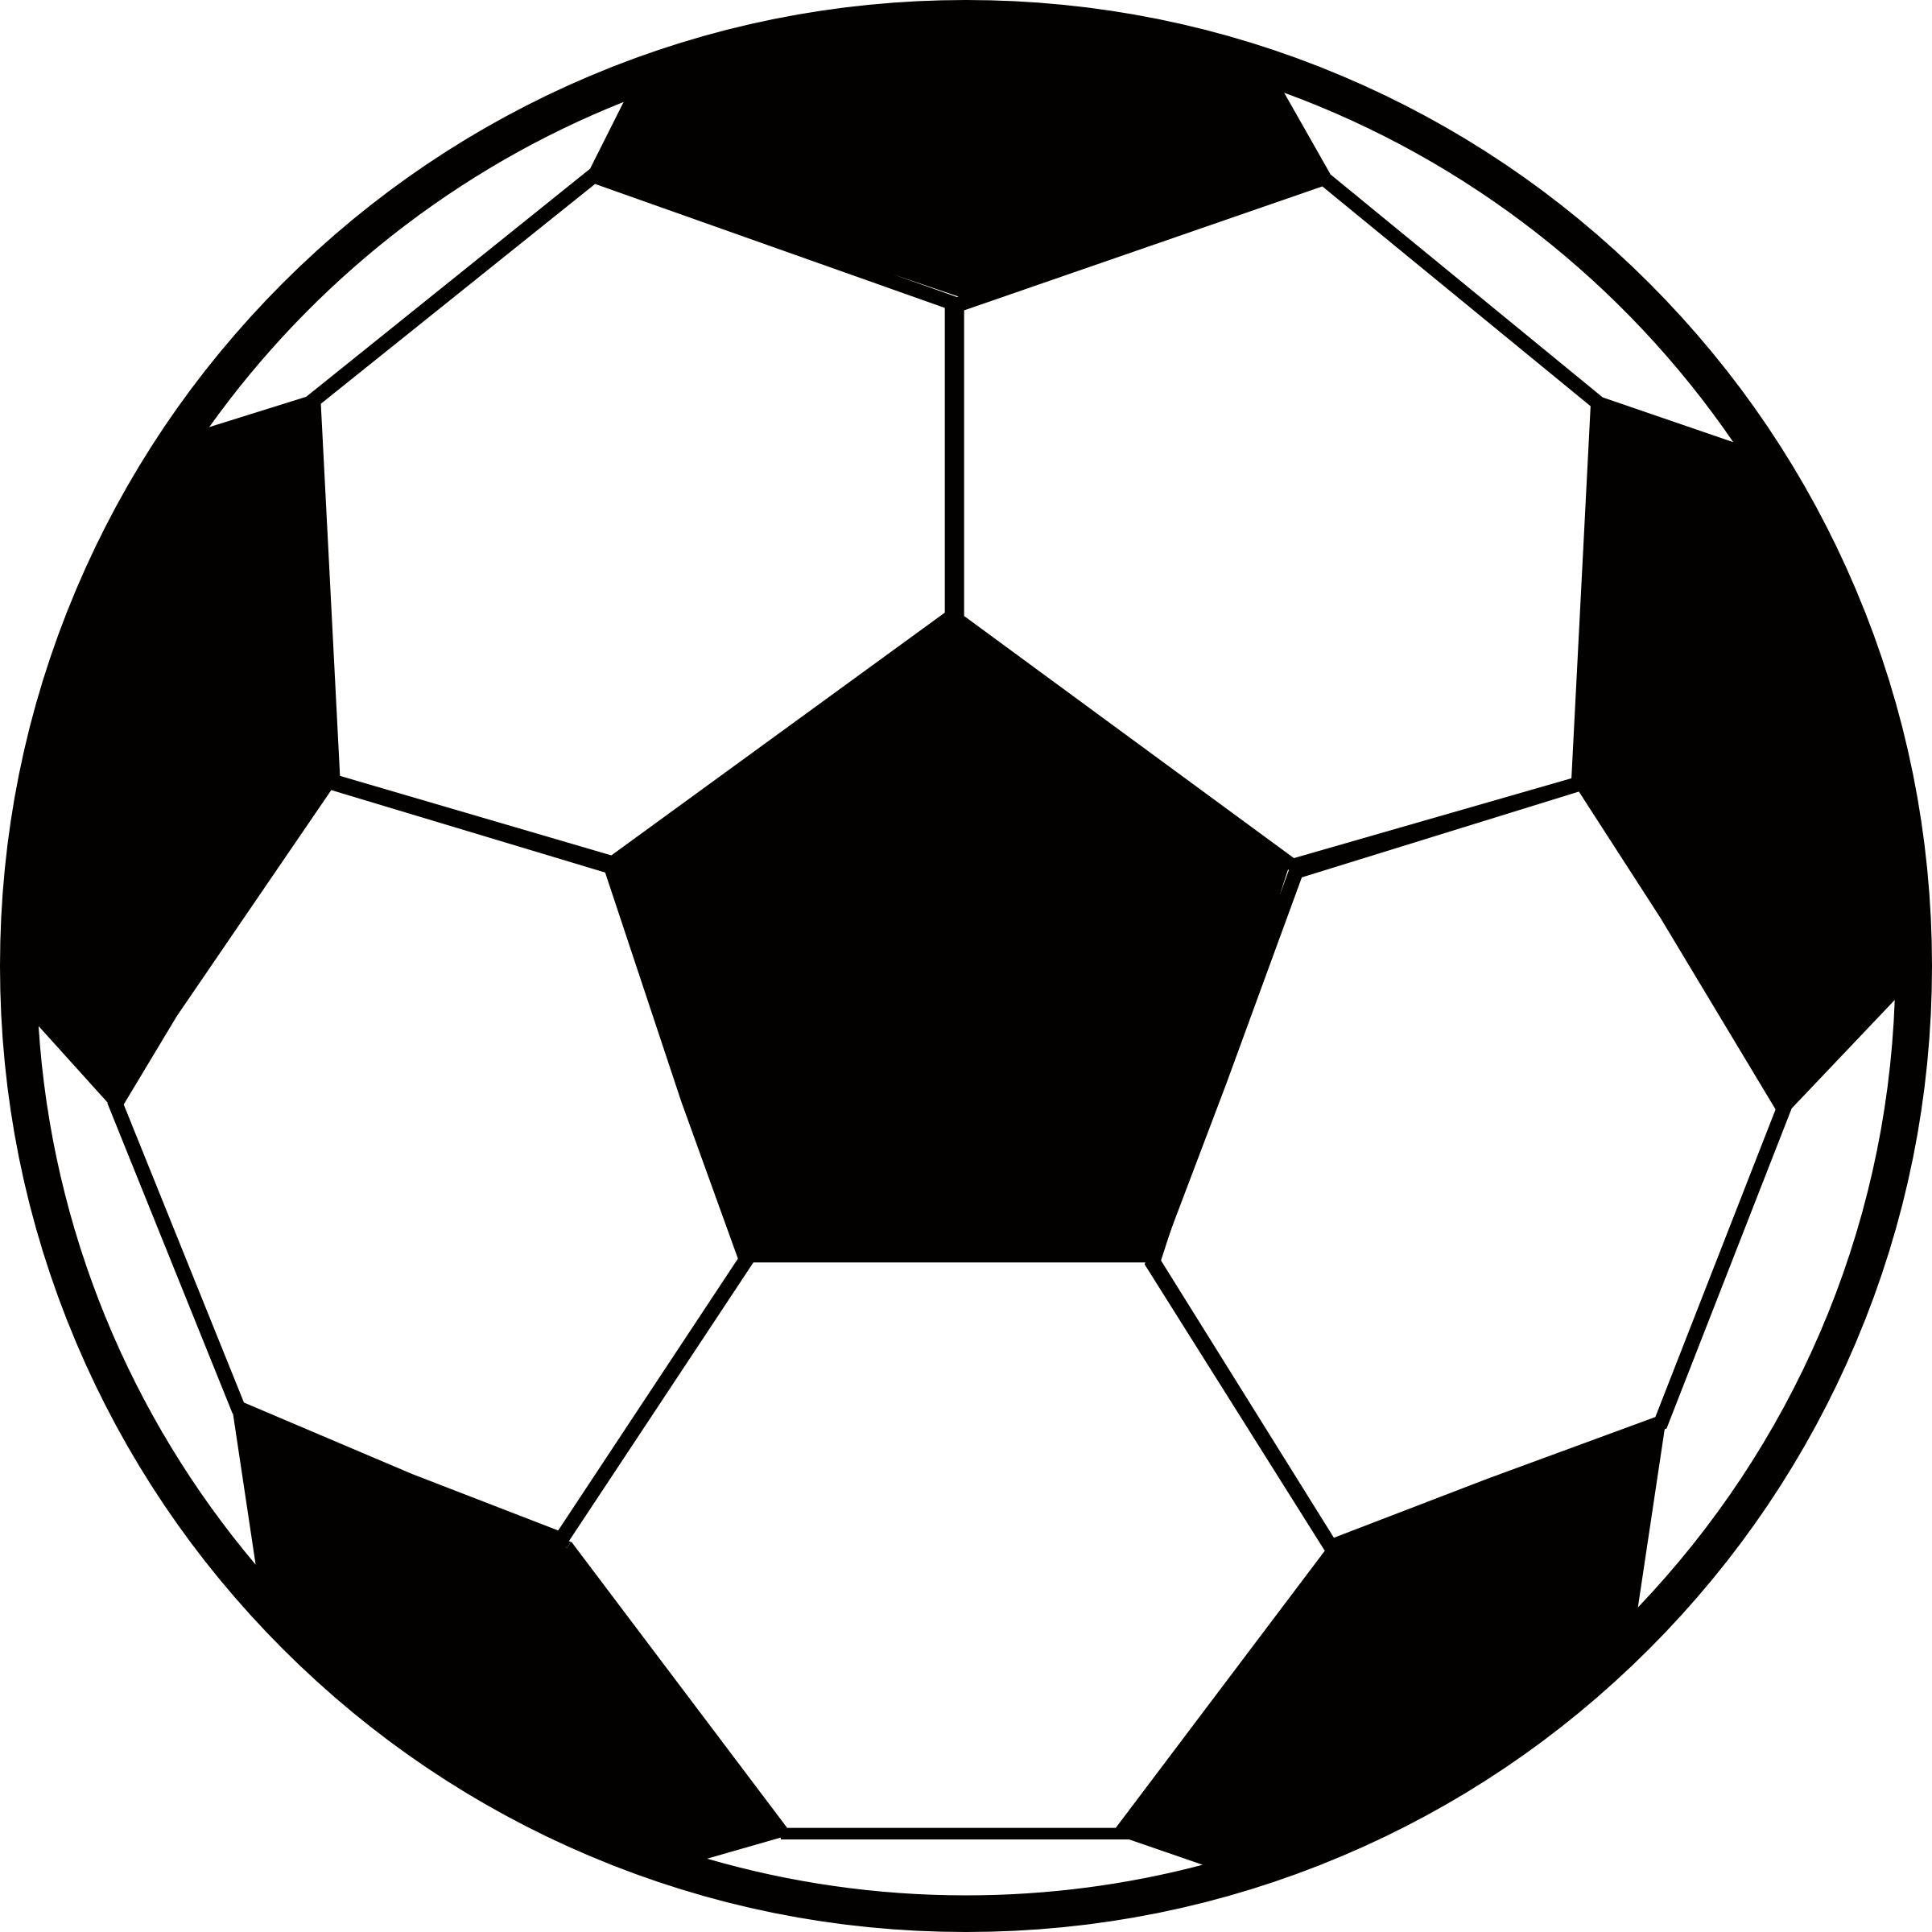 Soccer ball clipart png. Collection of images